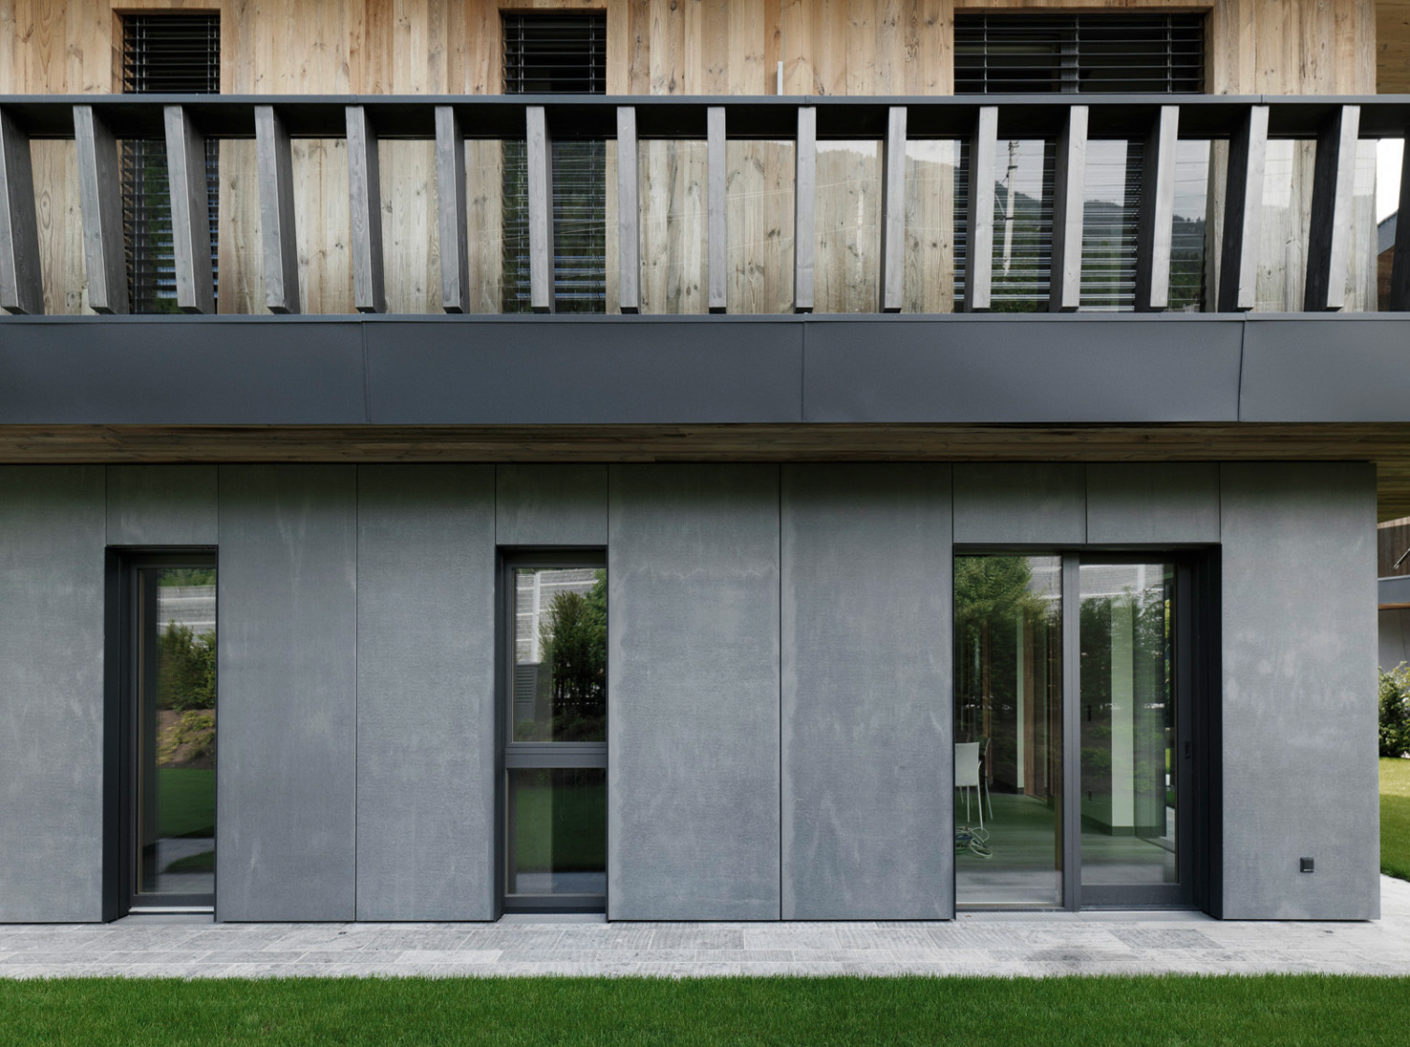 While the upper stories are clad in wood, the ground floor relies on anthracite-colored panels made of fibreC, fiberglass concrete.